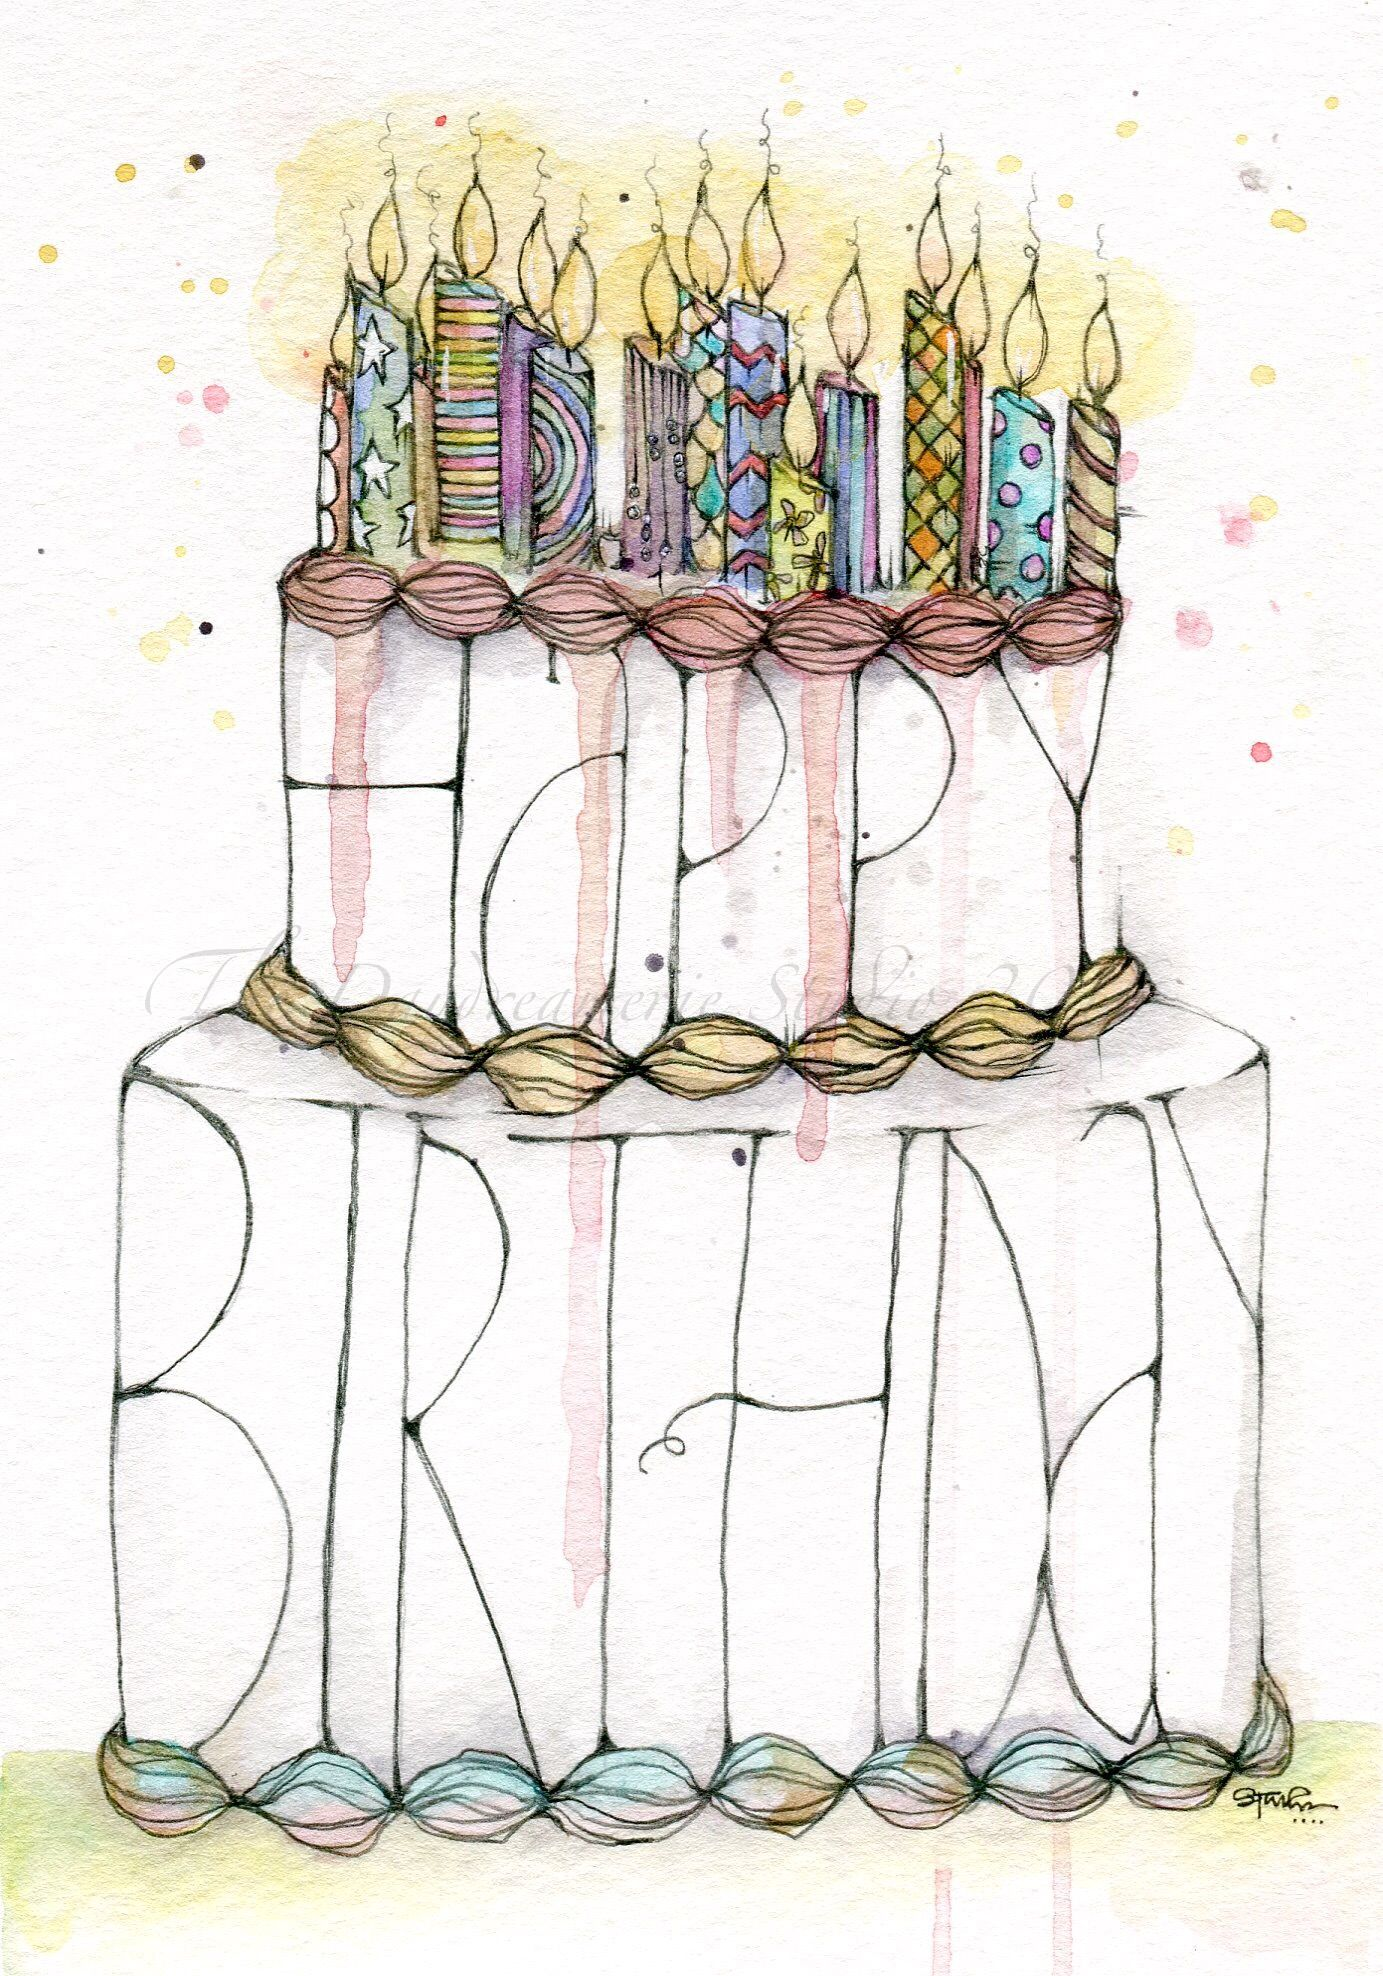 Birthday cakes. Watercolor & pencil. #52 #thedaydreamerie boho candles #lettercakegeburtstag